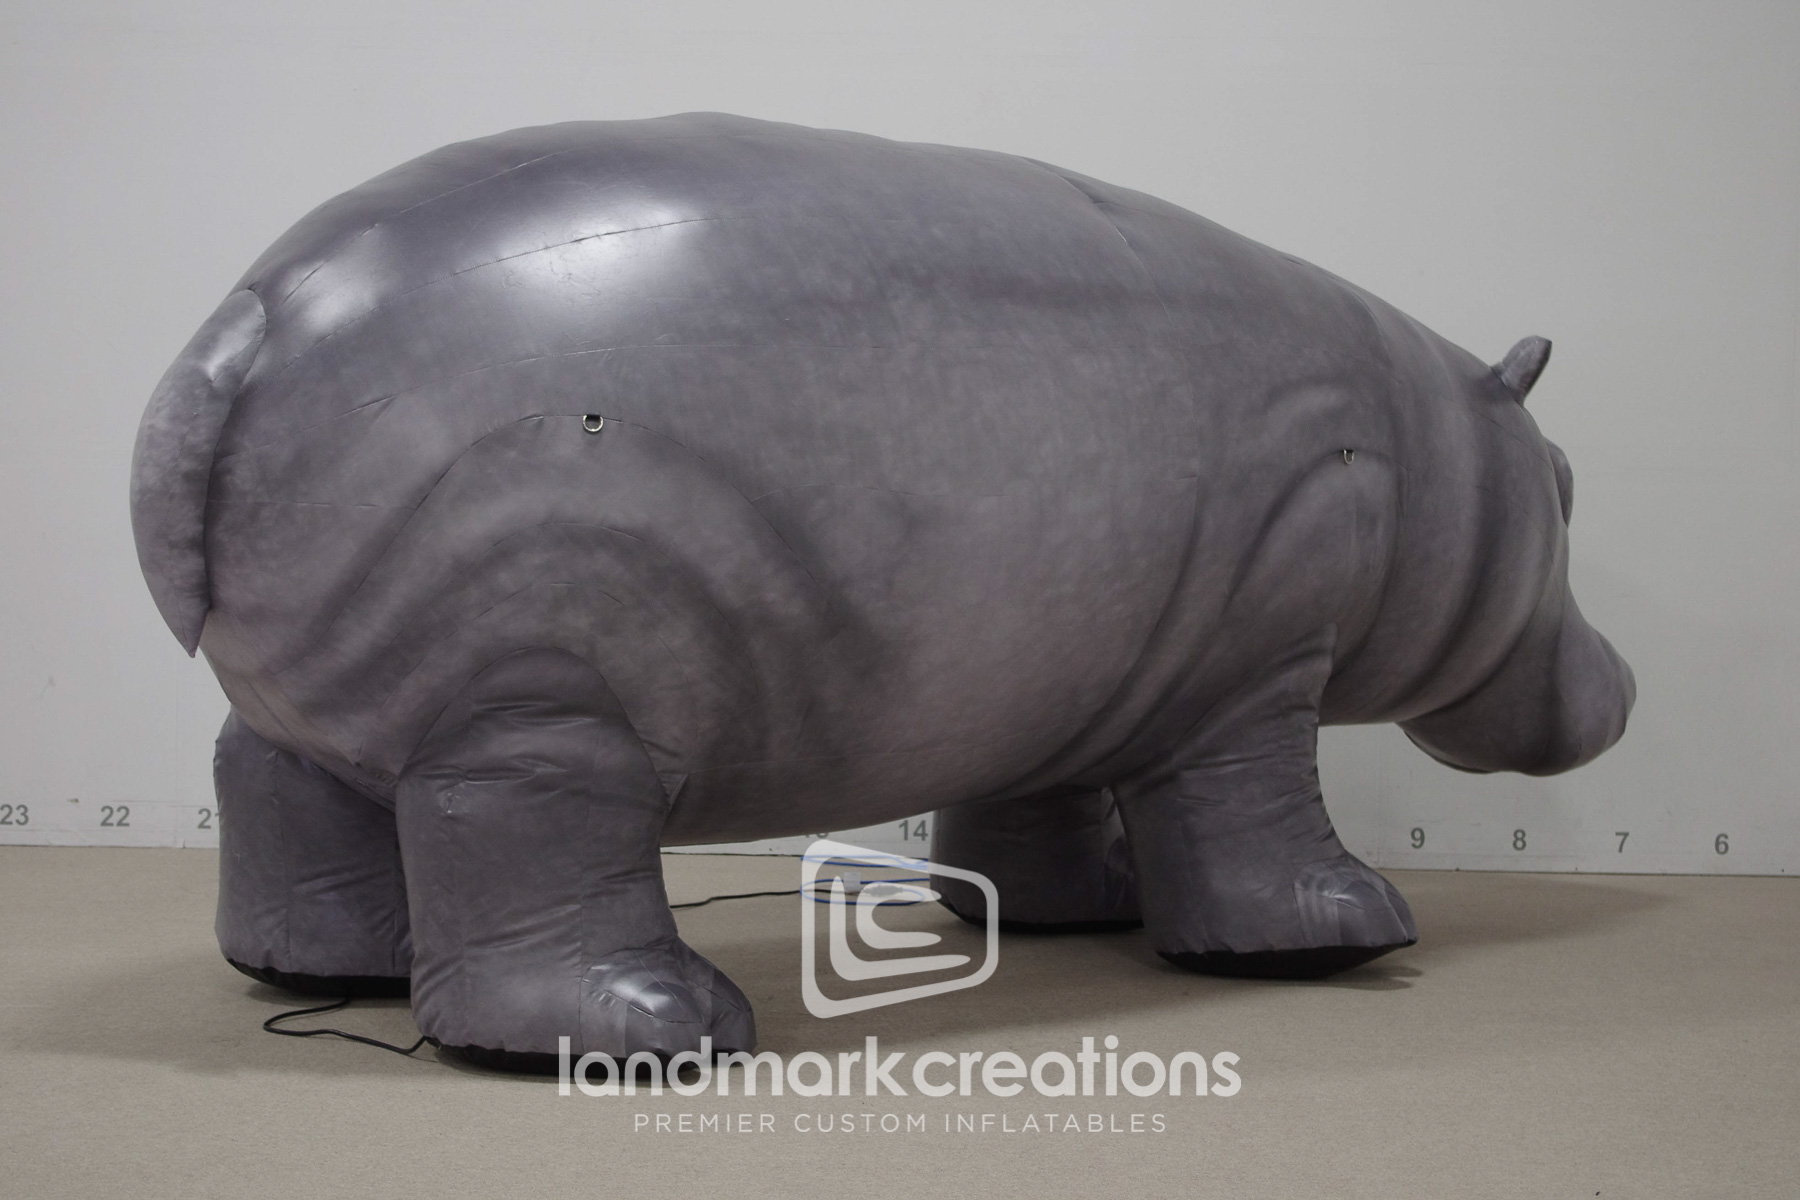 Hippo Inflatable Makes a Splash at The Delaware AeroSpace ...